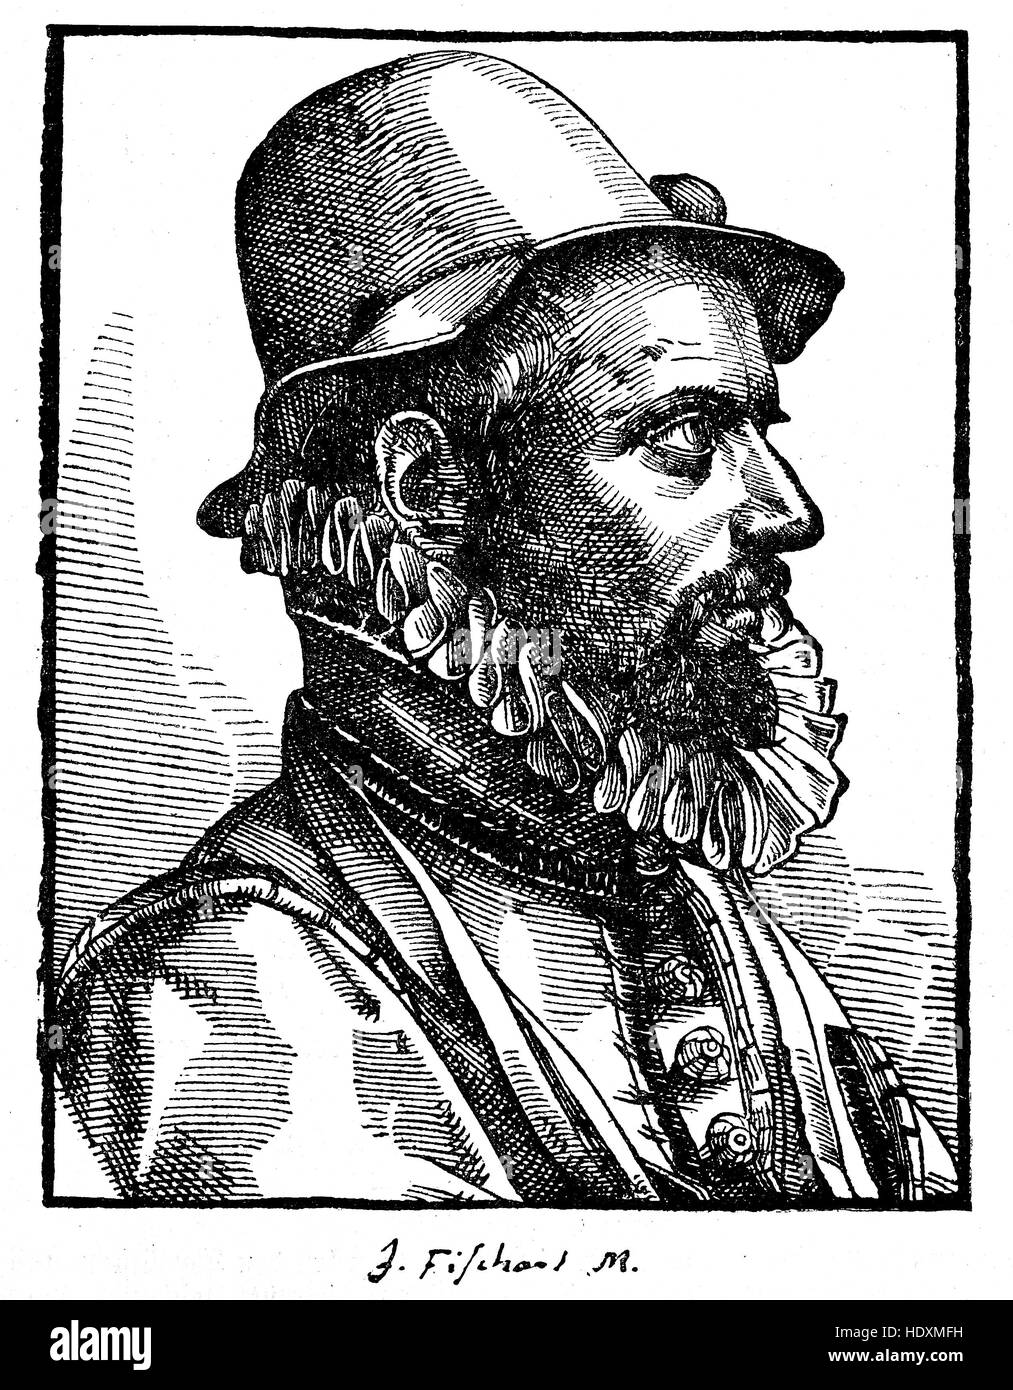 Johann Baptist Fischart, 1545-1591, a German satirist and publicist, woodcut from the year 1882, digital improved - Stock Image